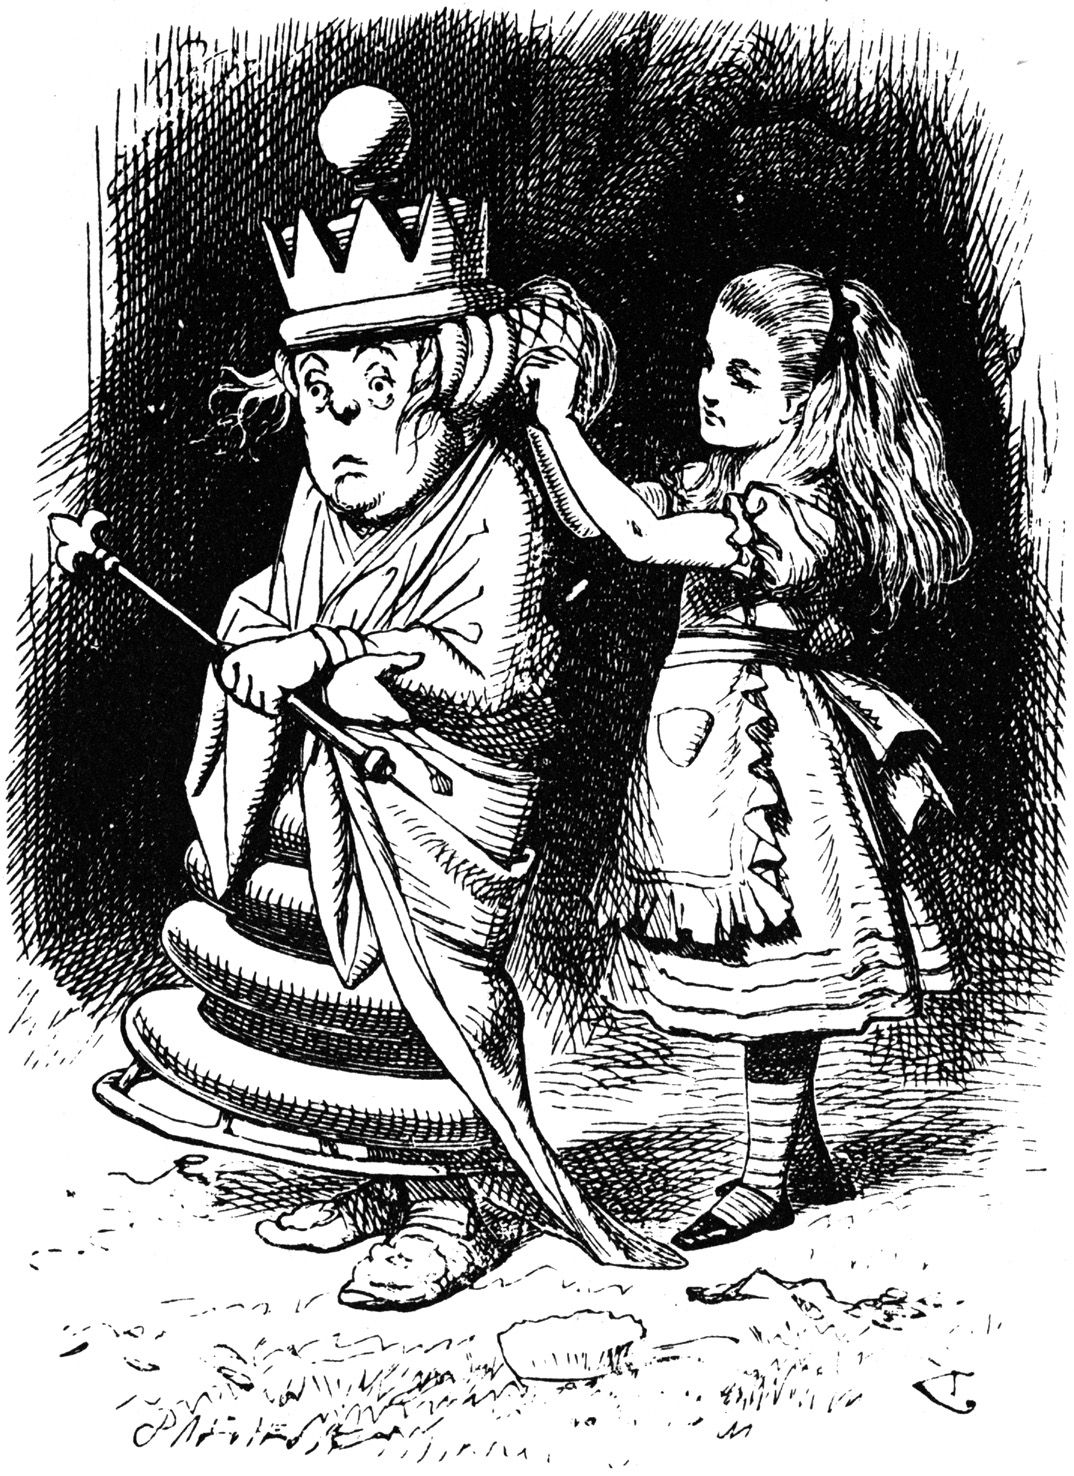 The White Queen and Alice from Alice Through the Looking Glass